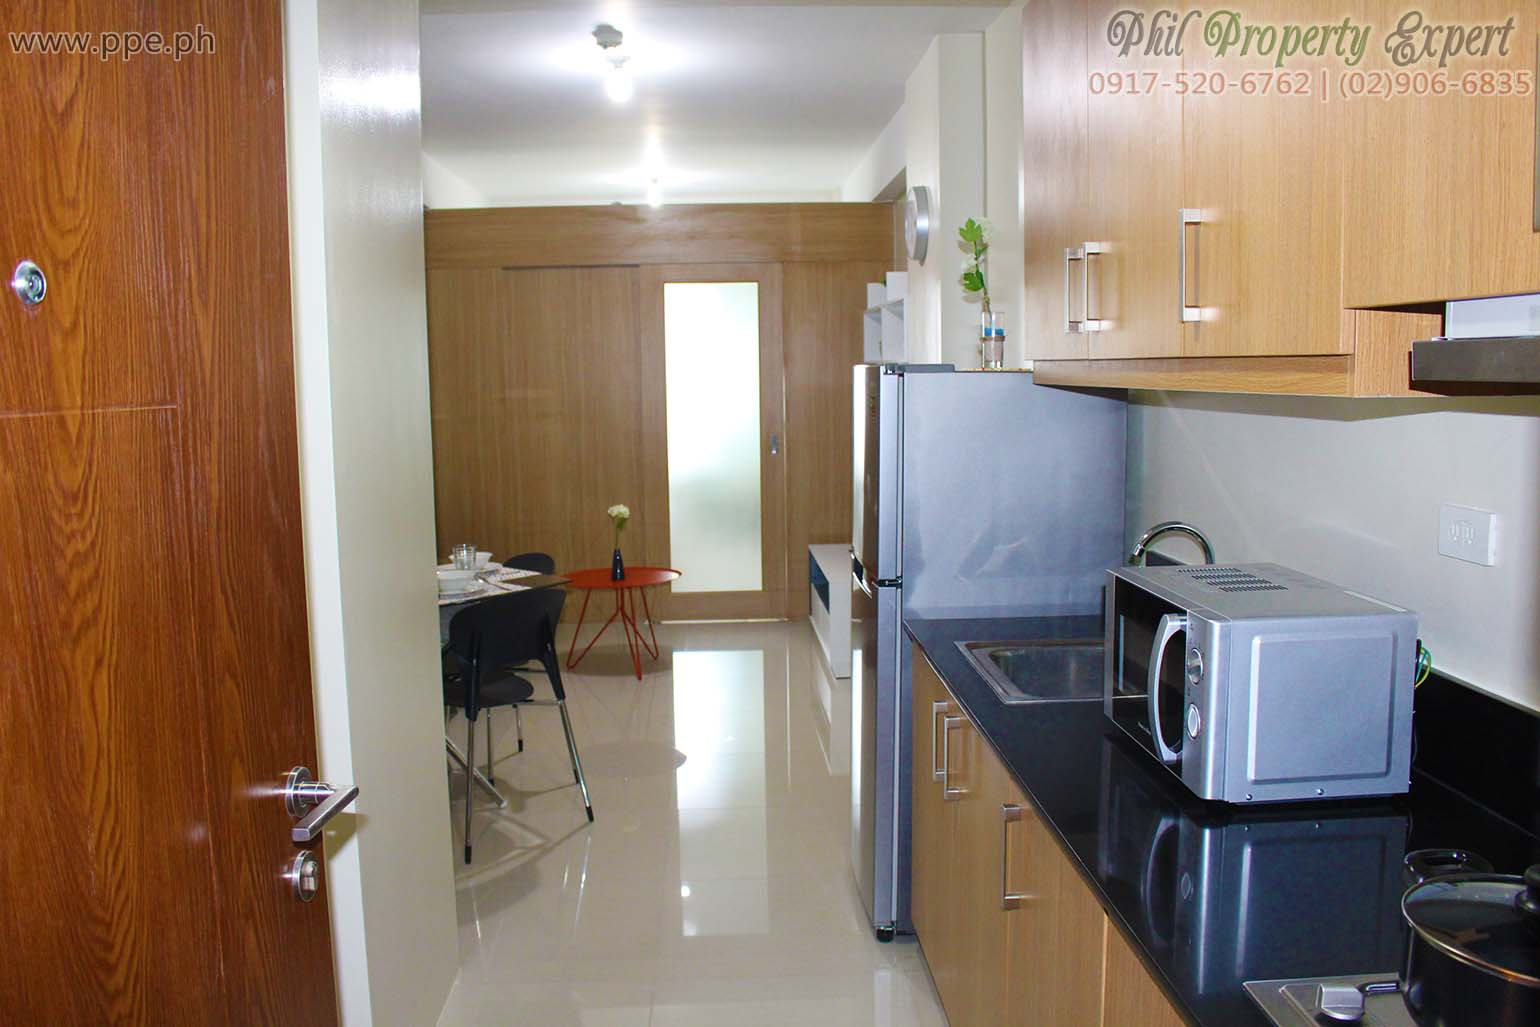 1 bedroom condo for rent in pasay mall of asia complex for I bedroom condo for rent